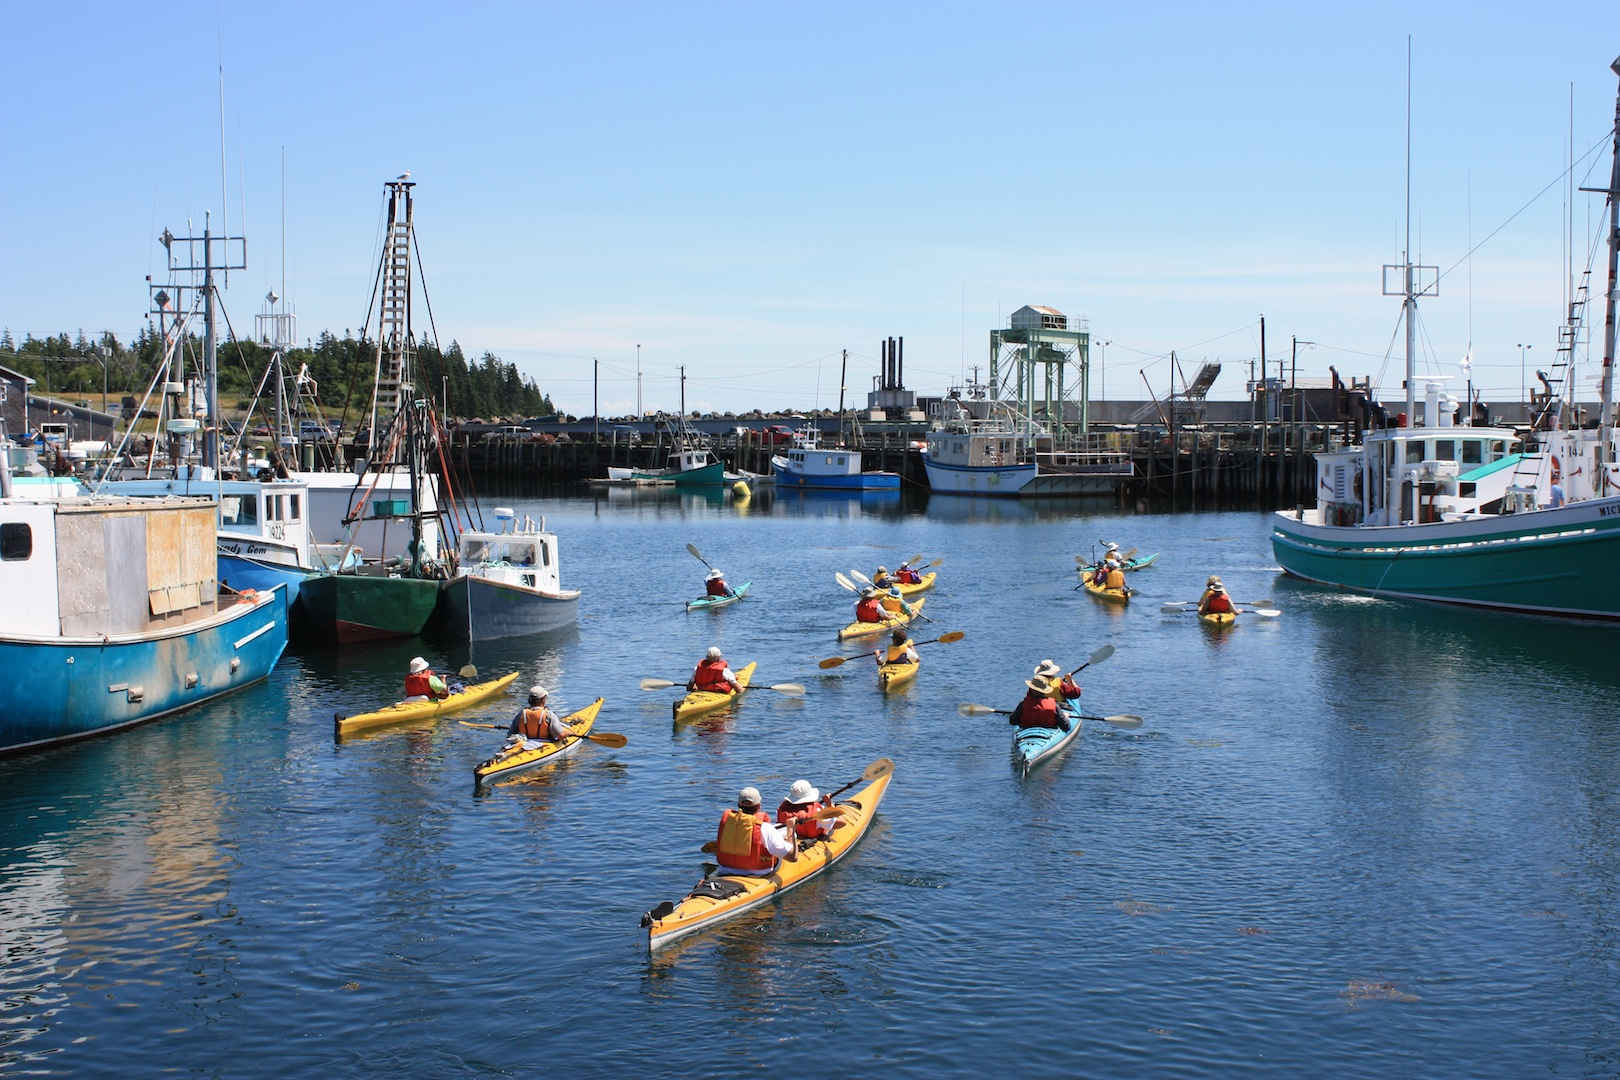 Kayaking-warf